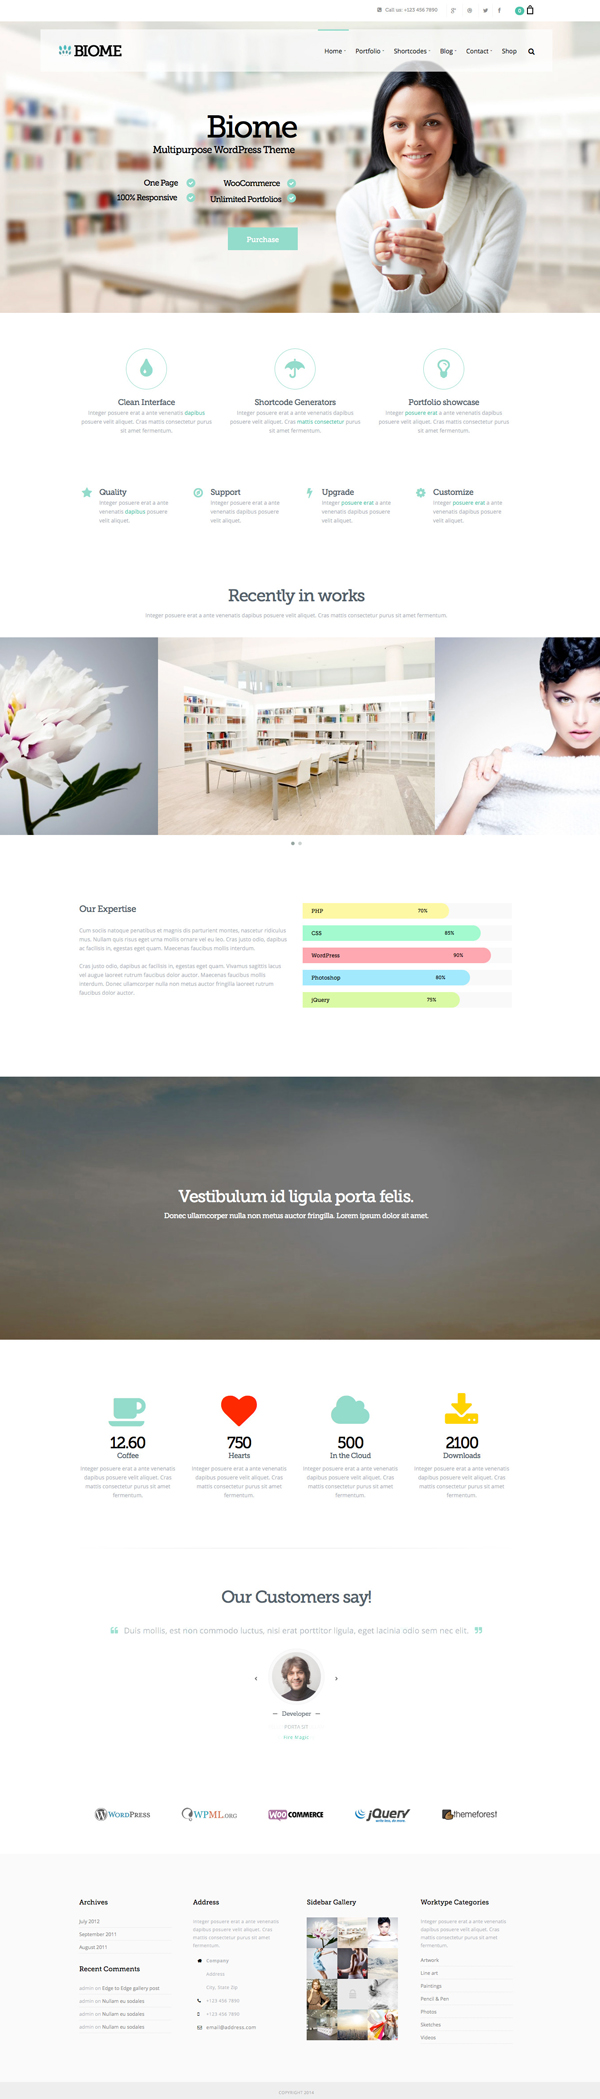 Biome - Multipurpose One Page WordPress Theme